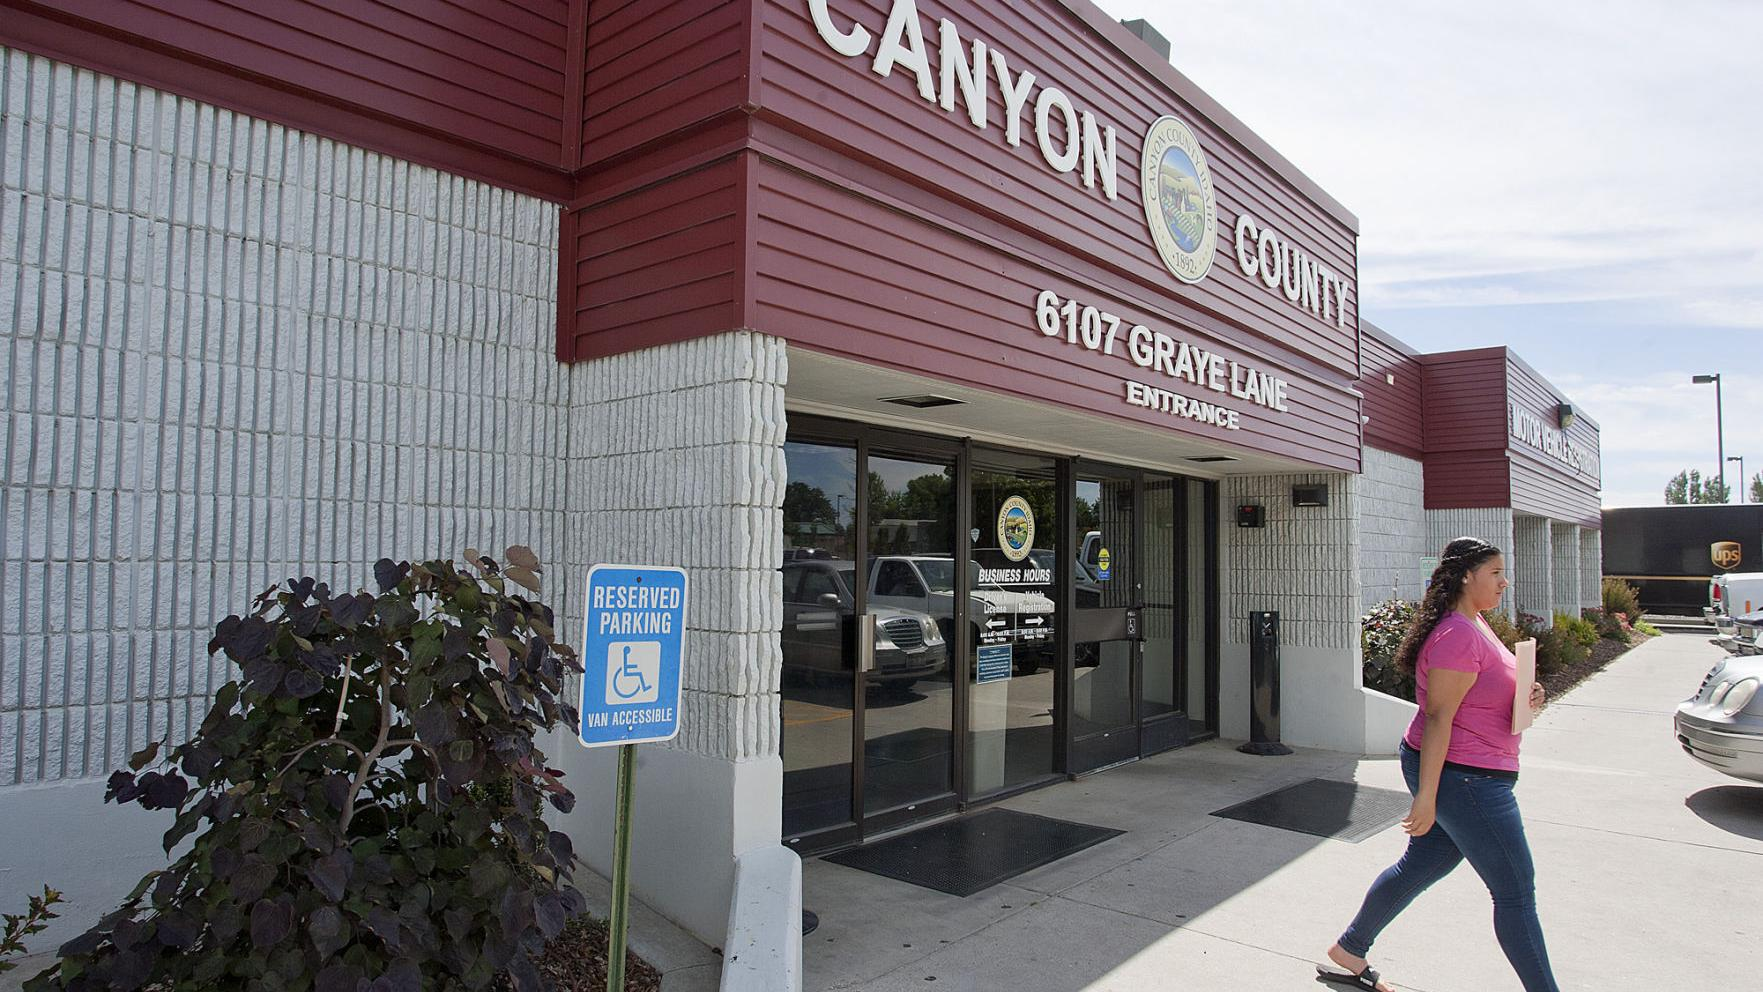 Canyon County To Close Vehicle Registration Office At Dmv Local News Idahopress Com